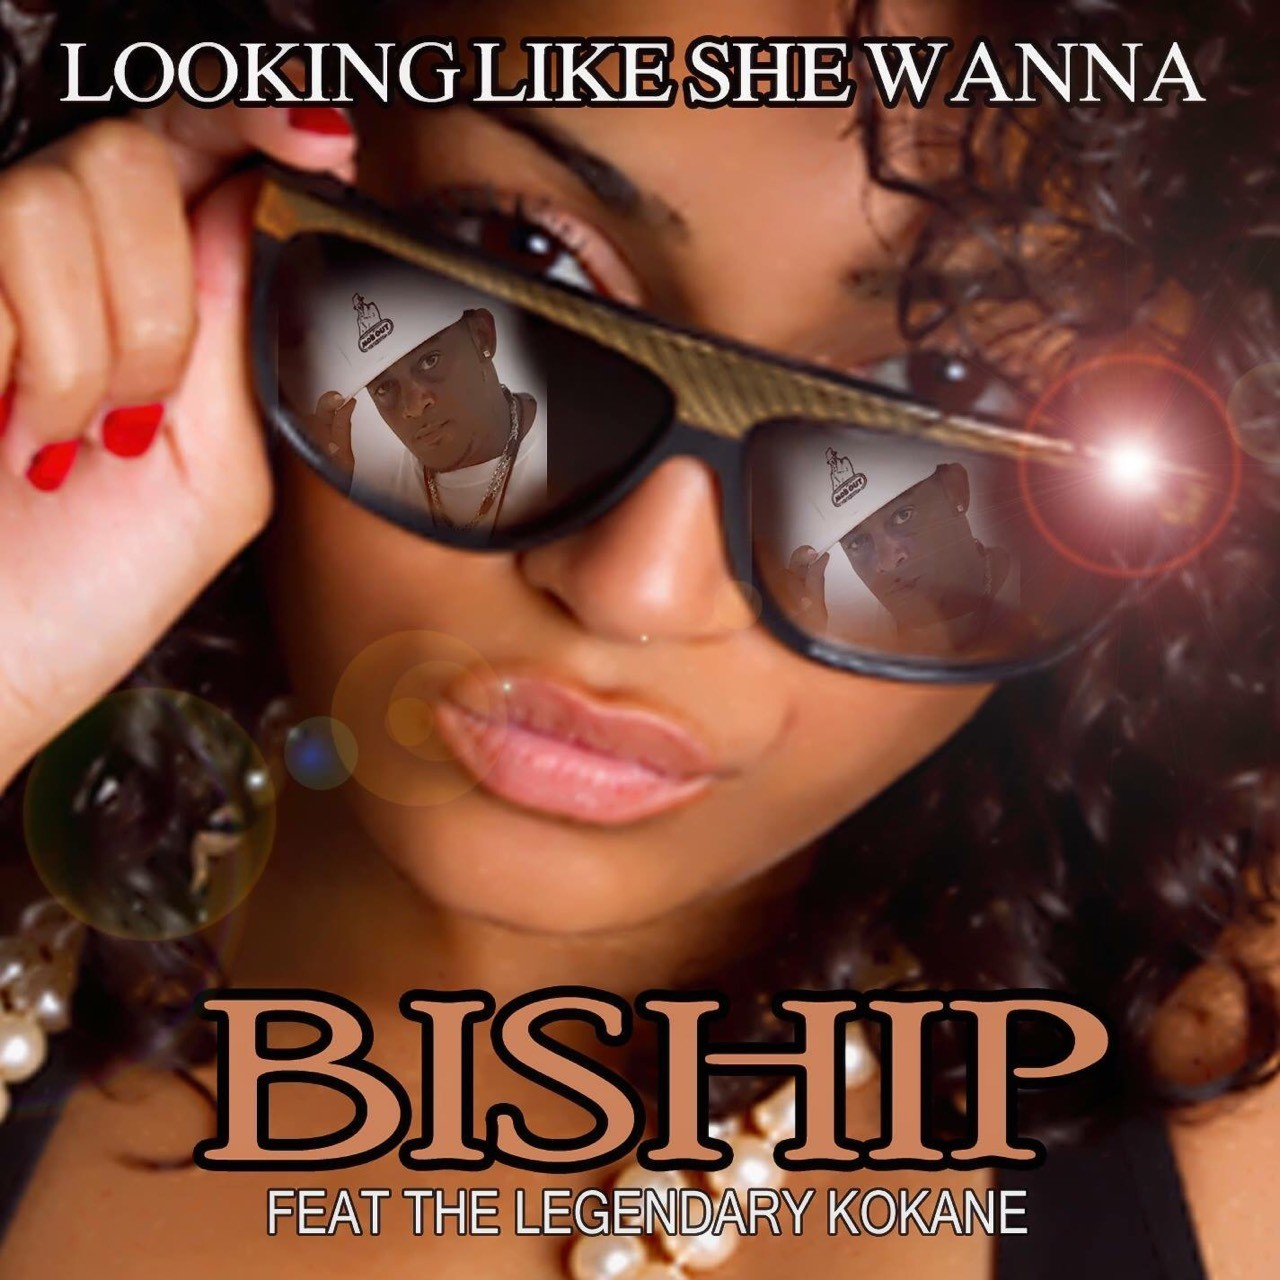 """Dropping soon Biship ft Legendary Kokane """"Looking Like She Wanna"""" check out the snippet"""